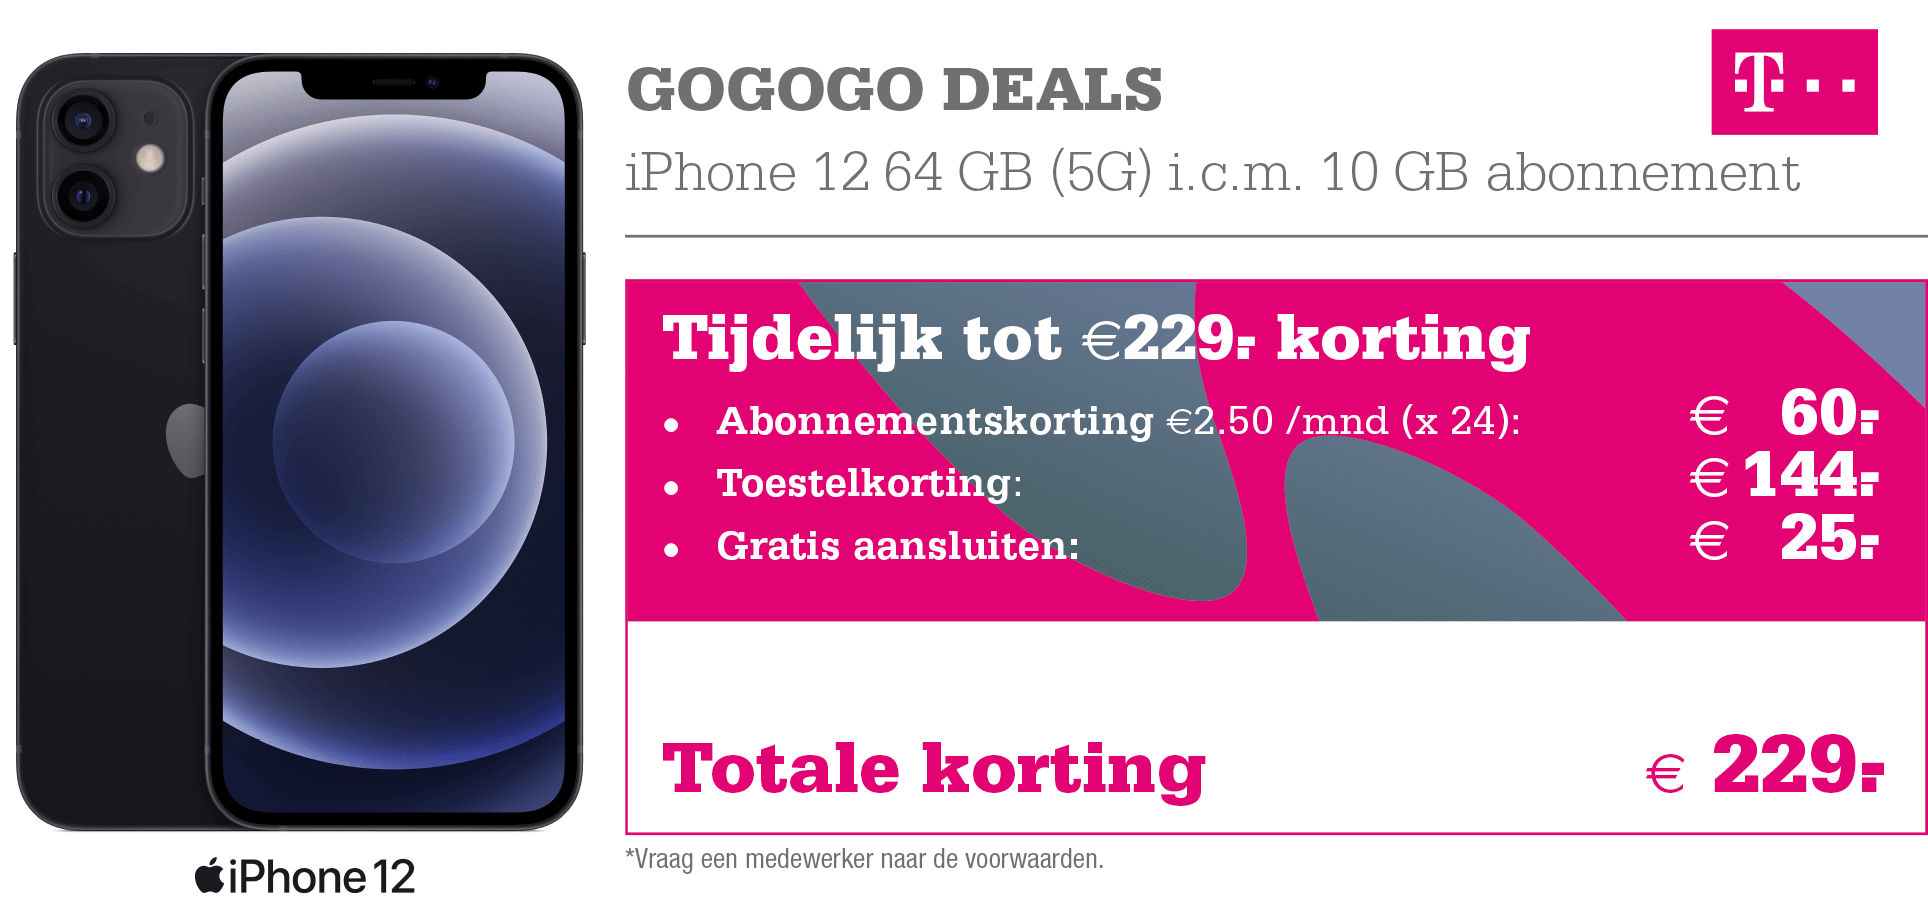 T-Mobile GoGoGo Deals iPhone 12